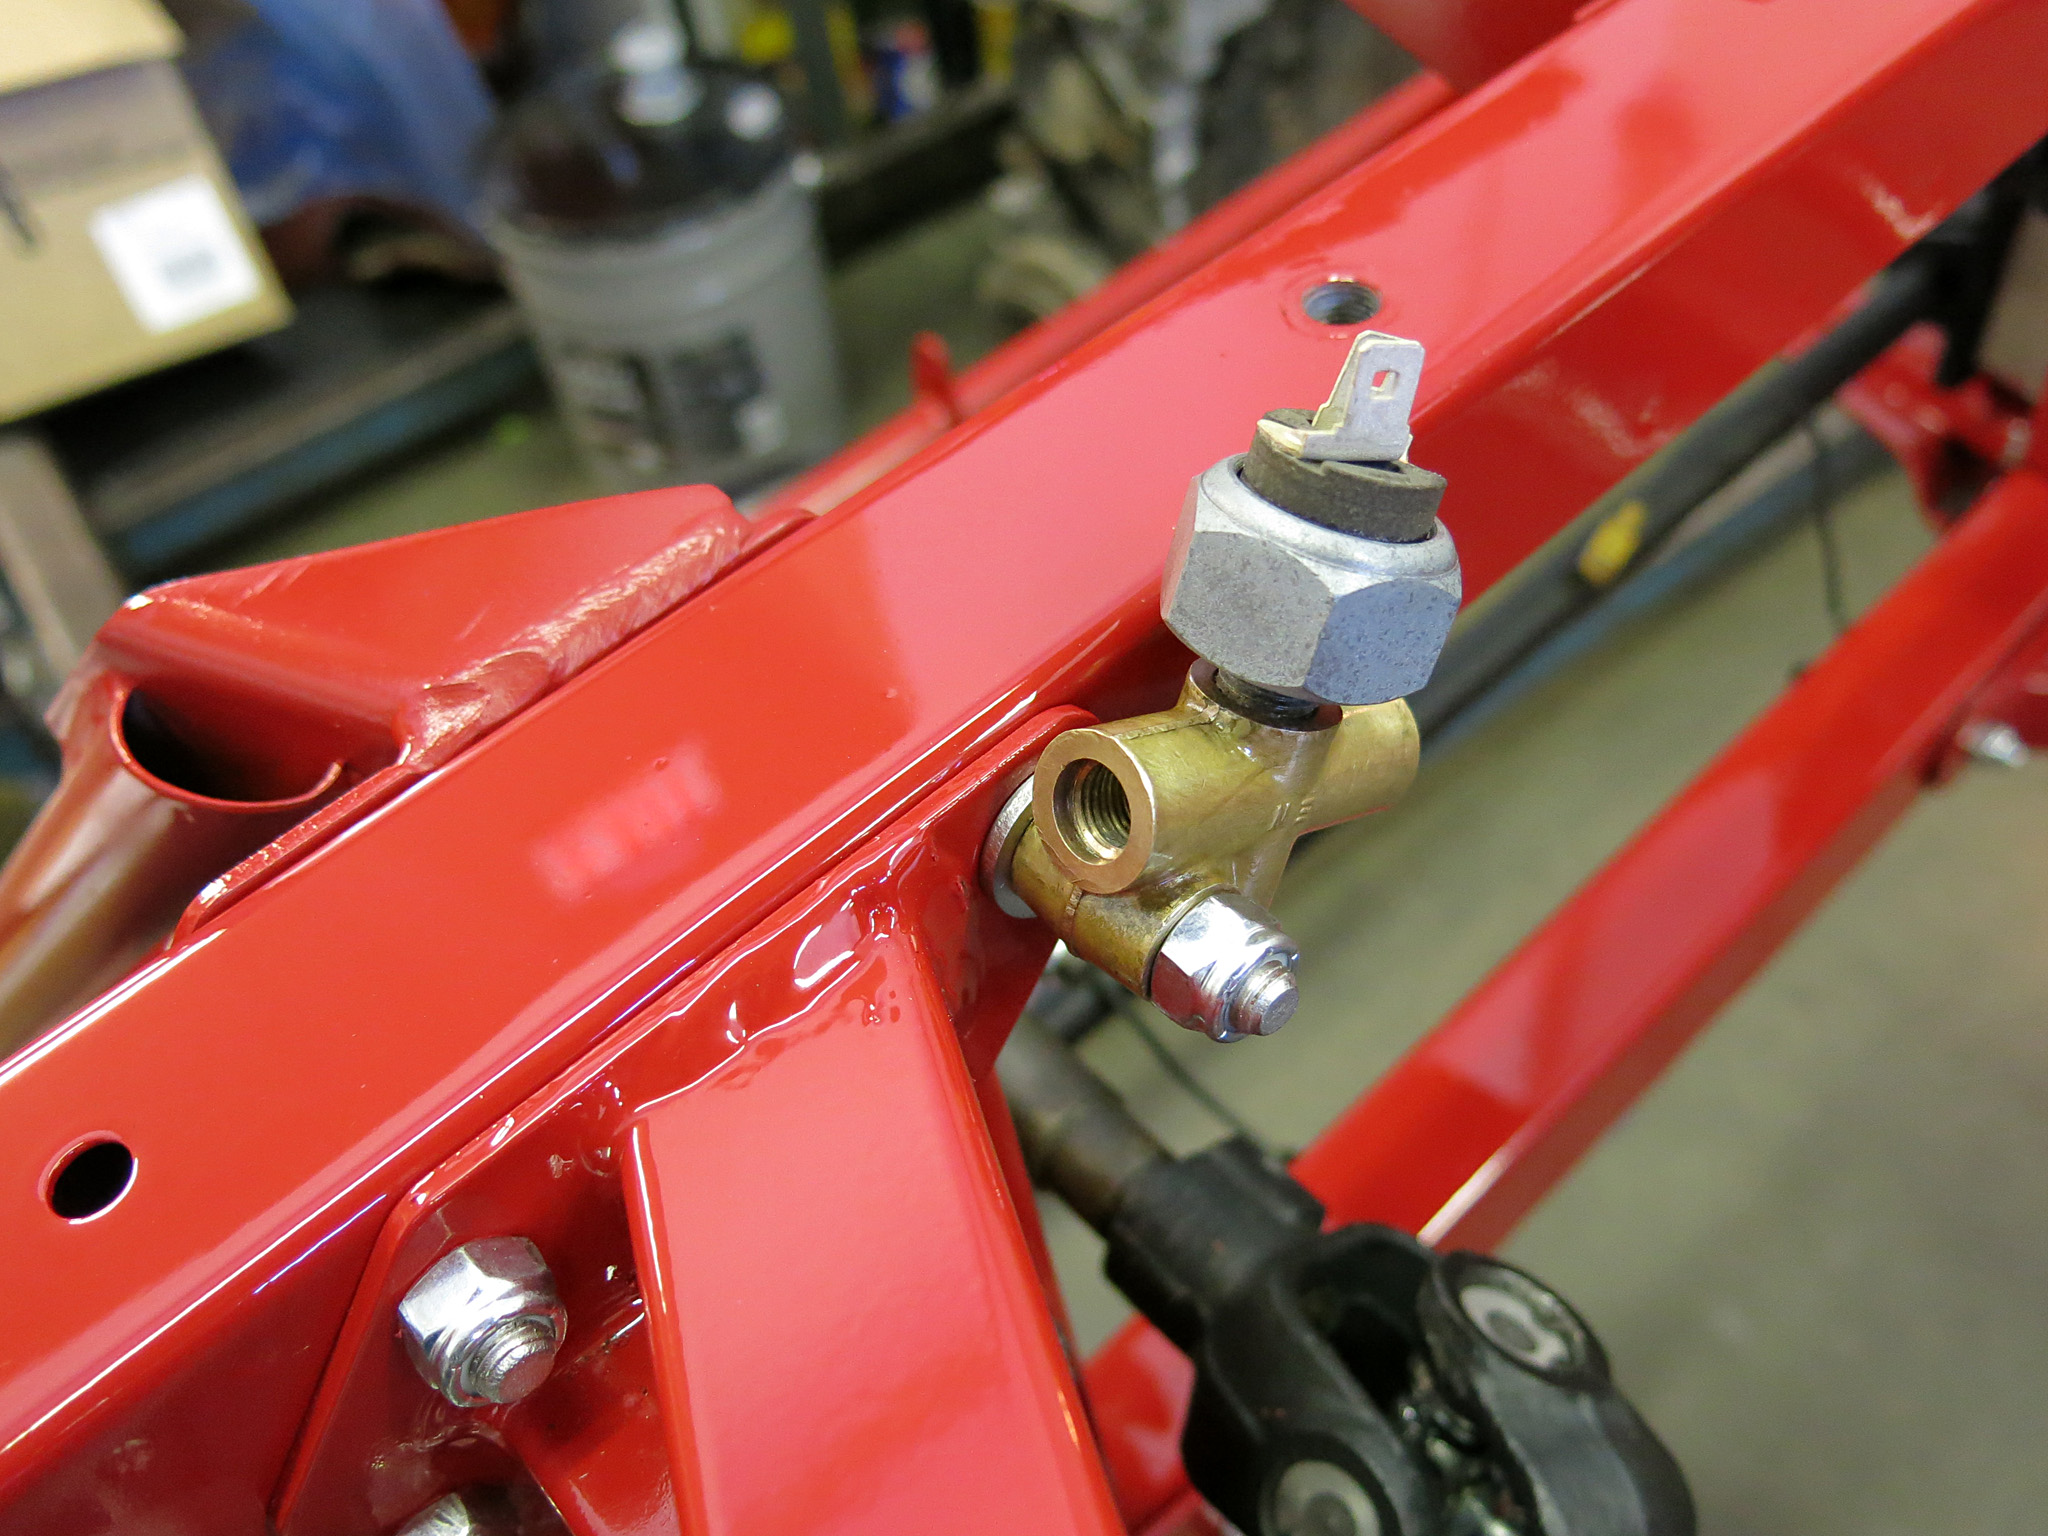 Step 7.5 - Install the same two inner bolts on the driver's side which also incorporates the 3-way hydraulic union .